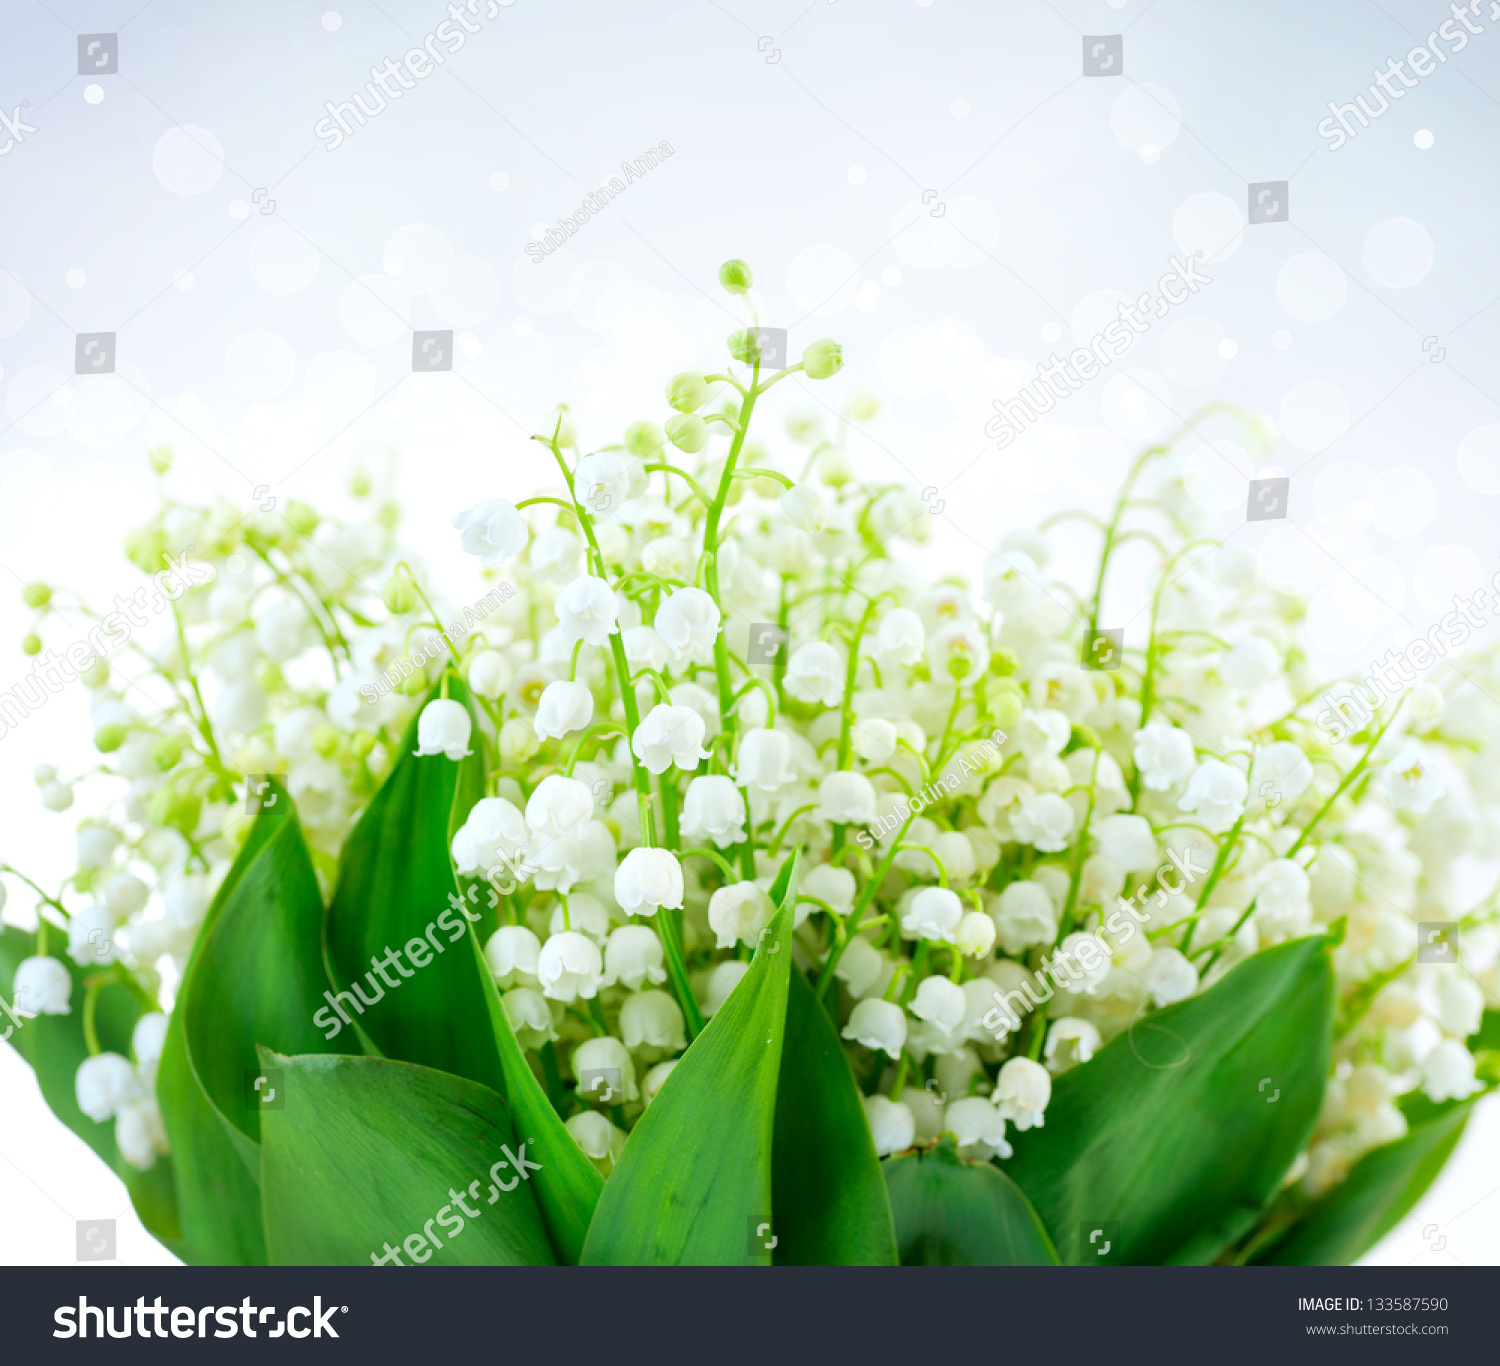 Lilyofthevalley flowers design bunch white spring stock photo lily of the valley flowers design bunch of white spring flower lilyofthevalley izmirmasajfo